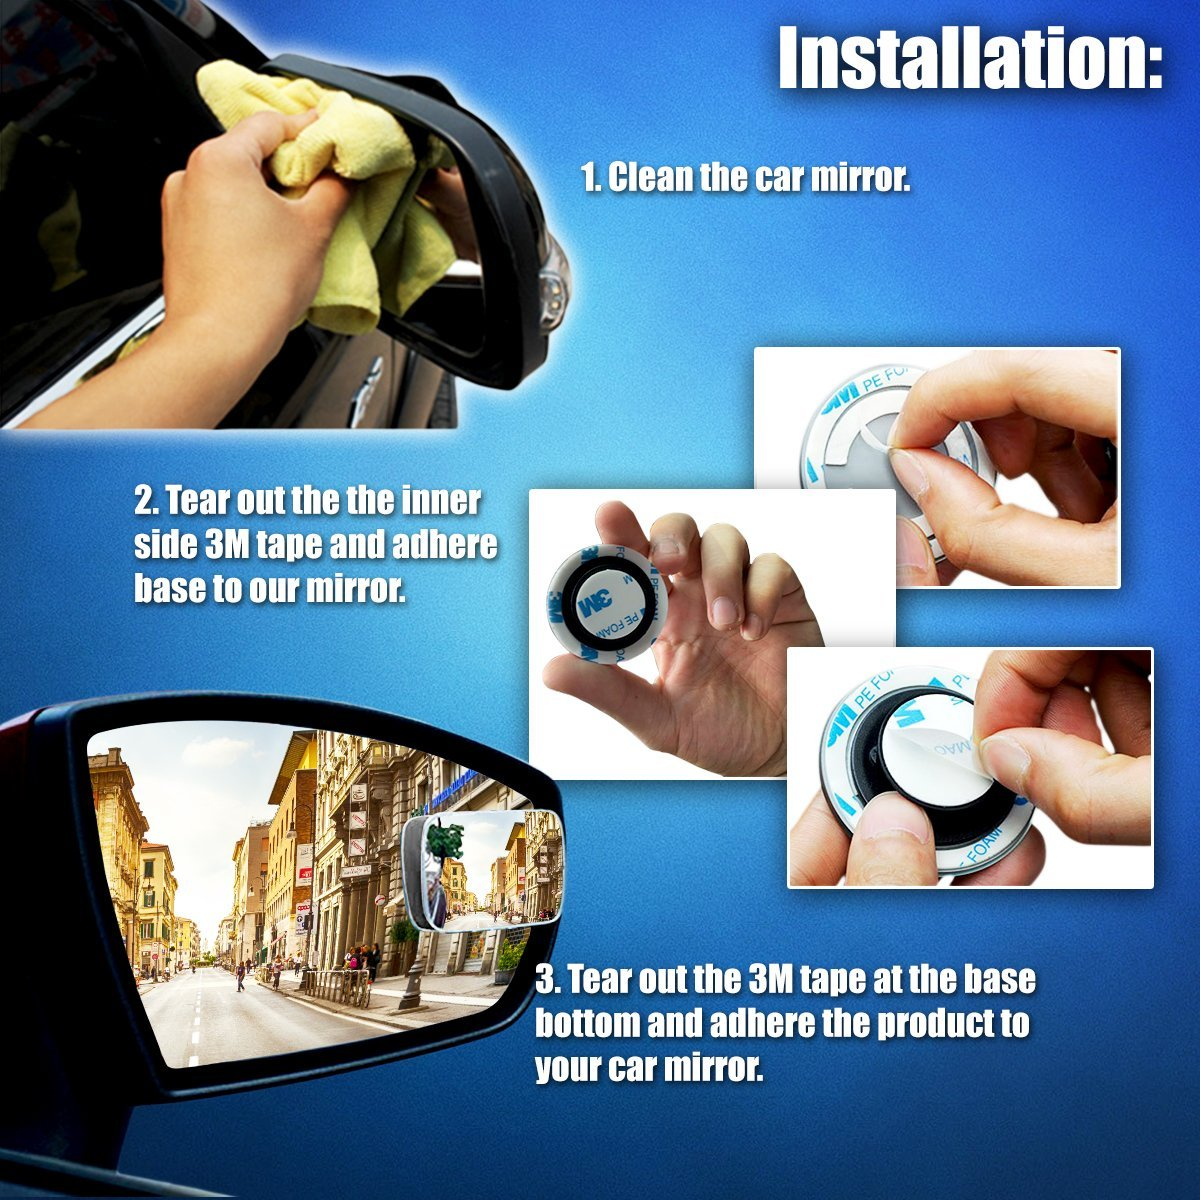 Zone Tech Blind Spot Adjustable Square Mirrors - 2-Pack Square Blind Spot Mirror Adjustable Stick-On Exterior Side Mirror for All Cars Motorcycles Trucks Snowmobiles - image 1 of 5